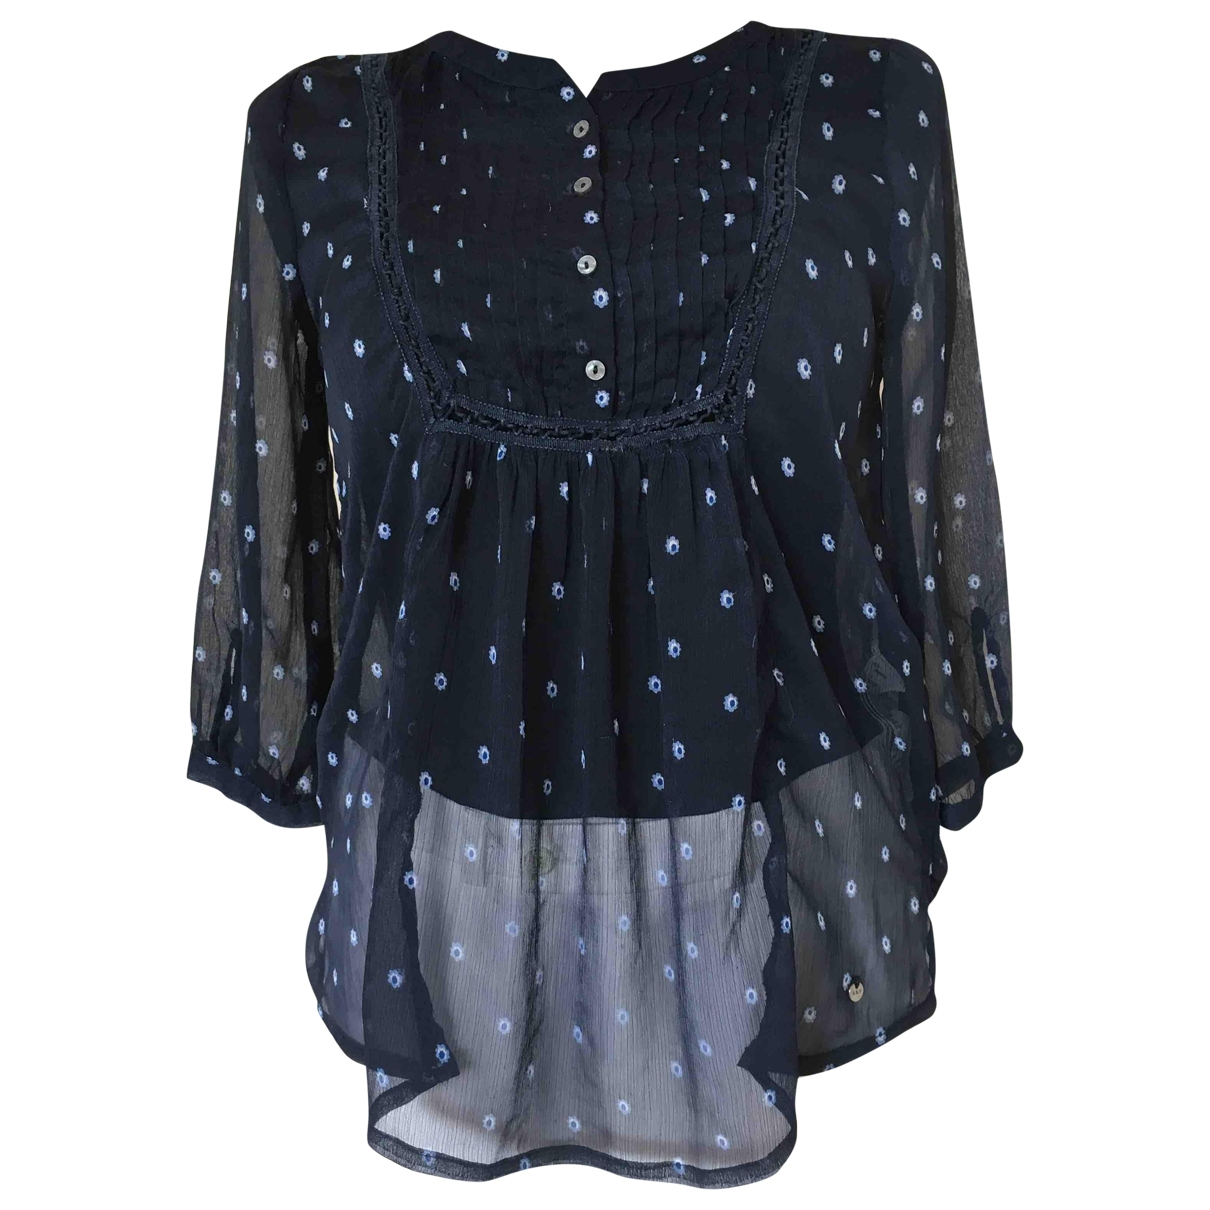 Abercrombie & Fitch \N Top in  Blau Polyester